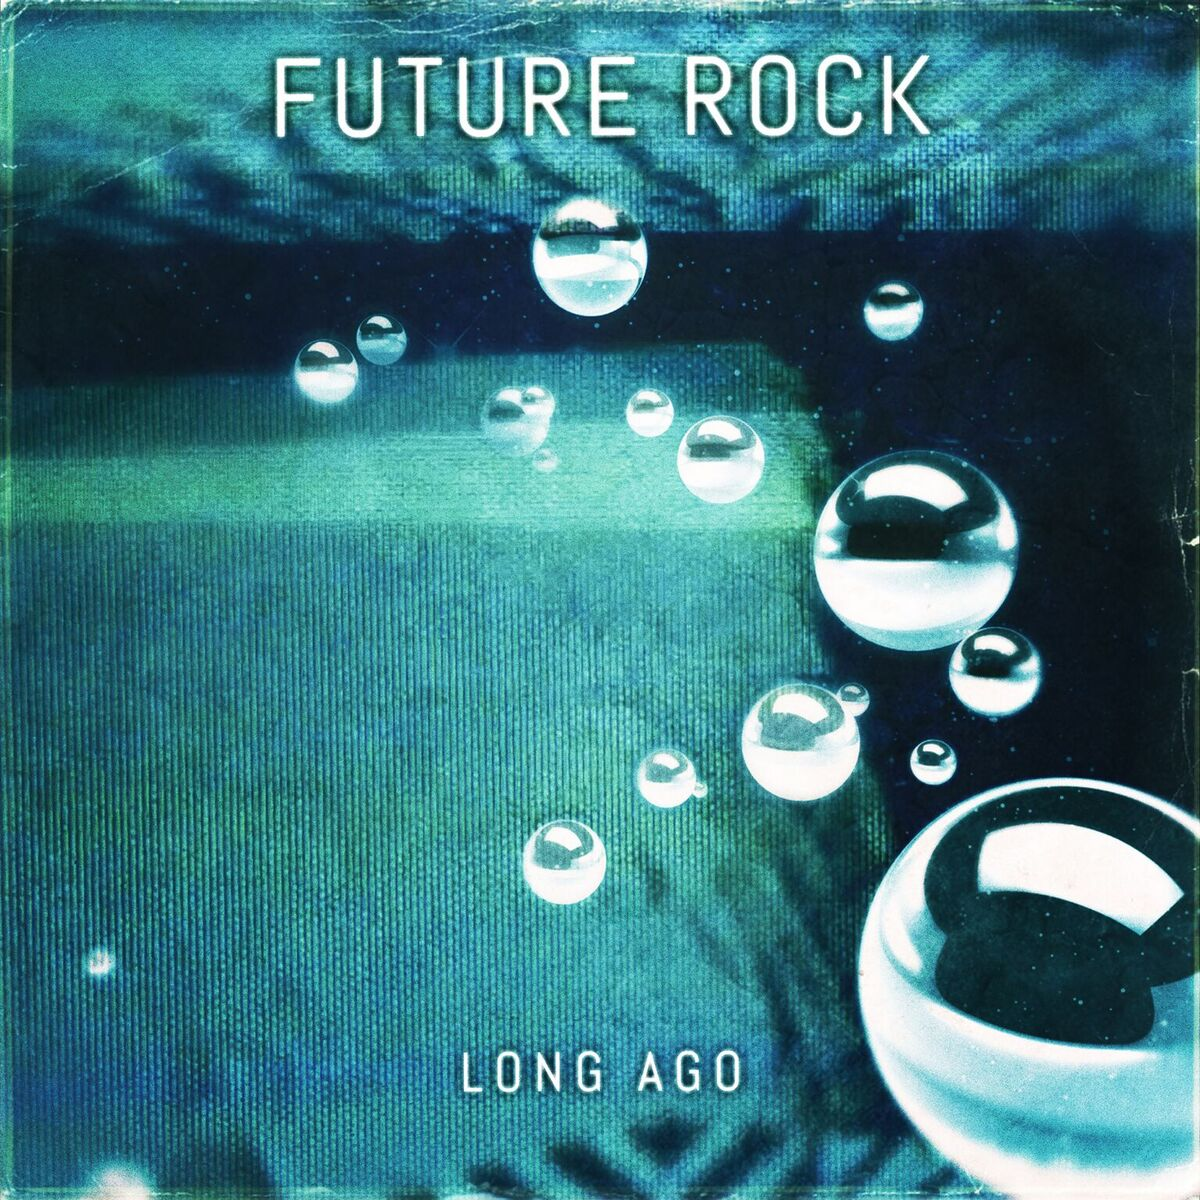 Future Rock Long Ago album artwork. Photo provided by Future Rock.